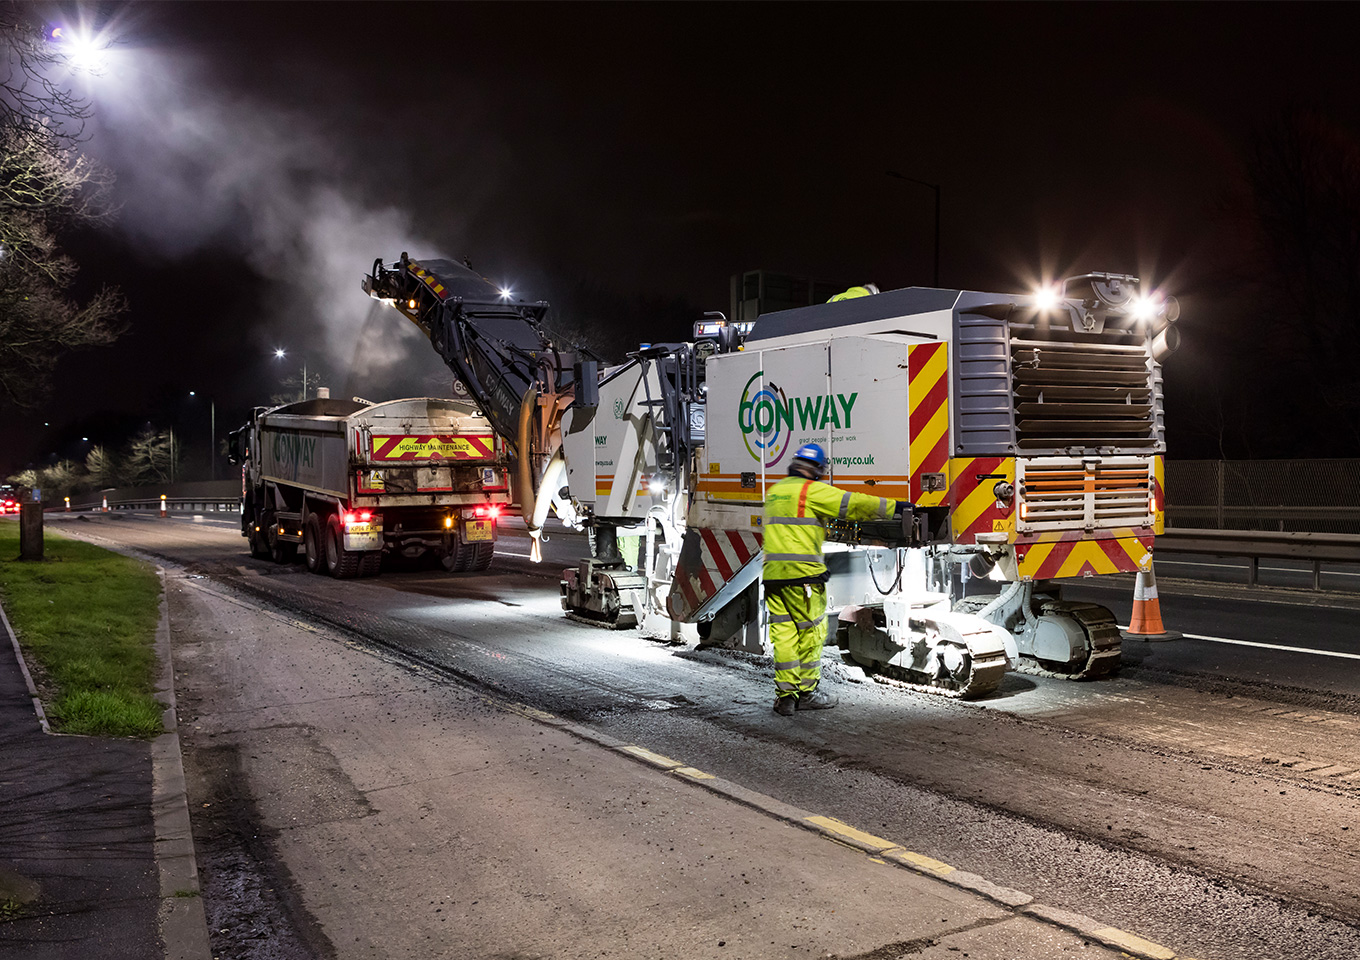 FM Conway and TfL launch ground-breaking asphalt trial thumbnail